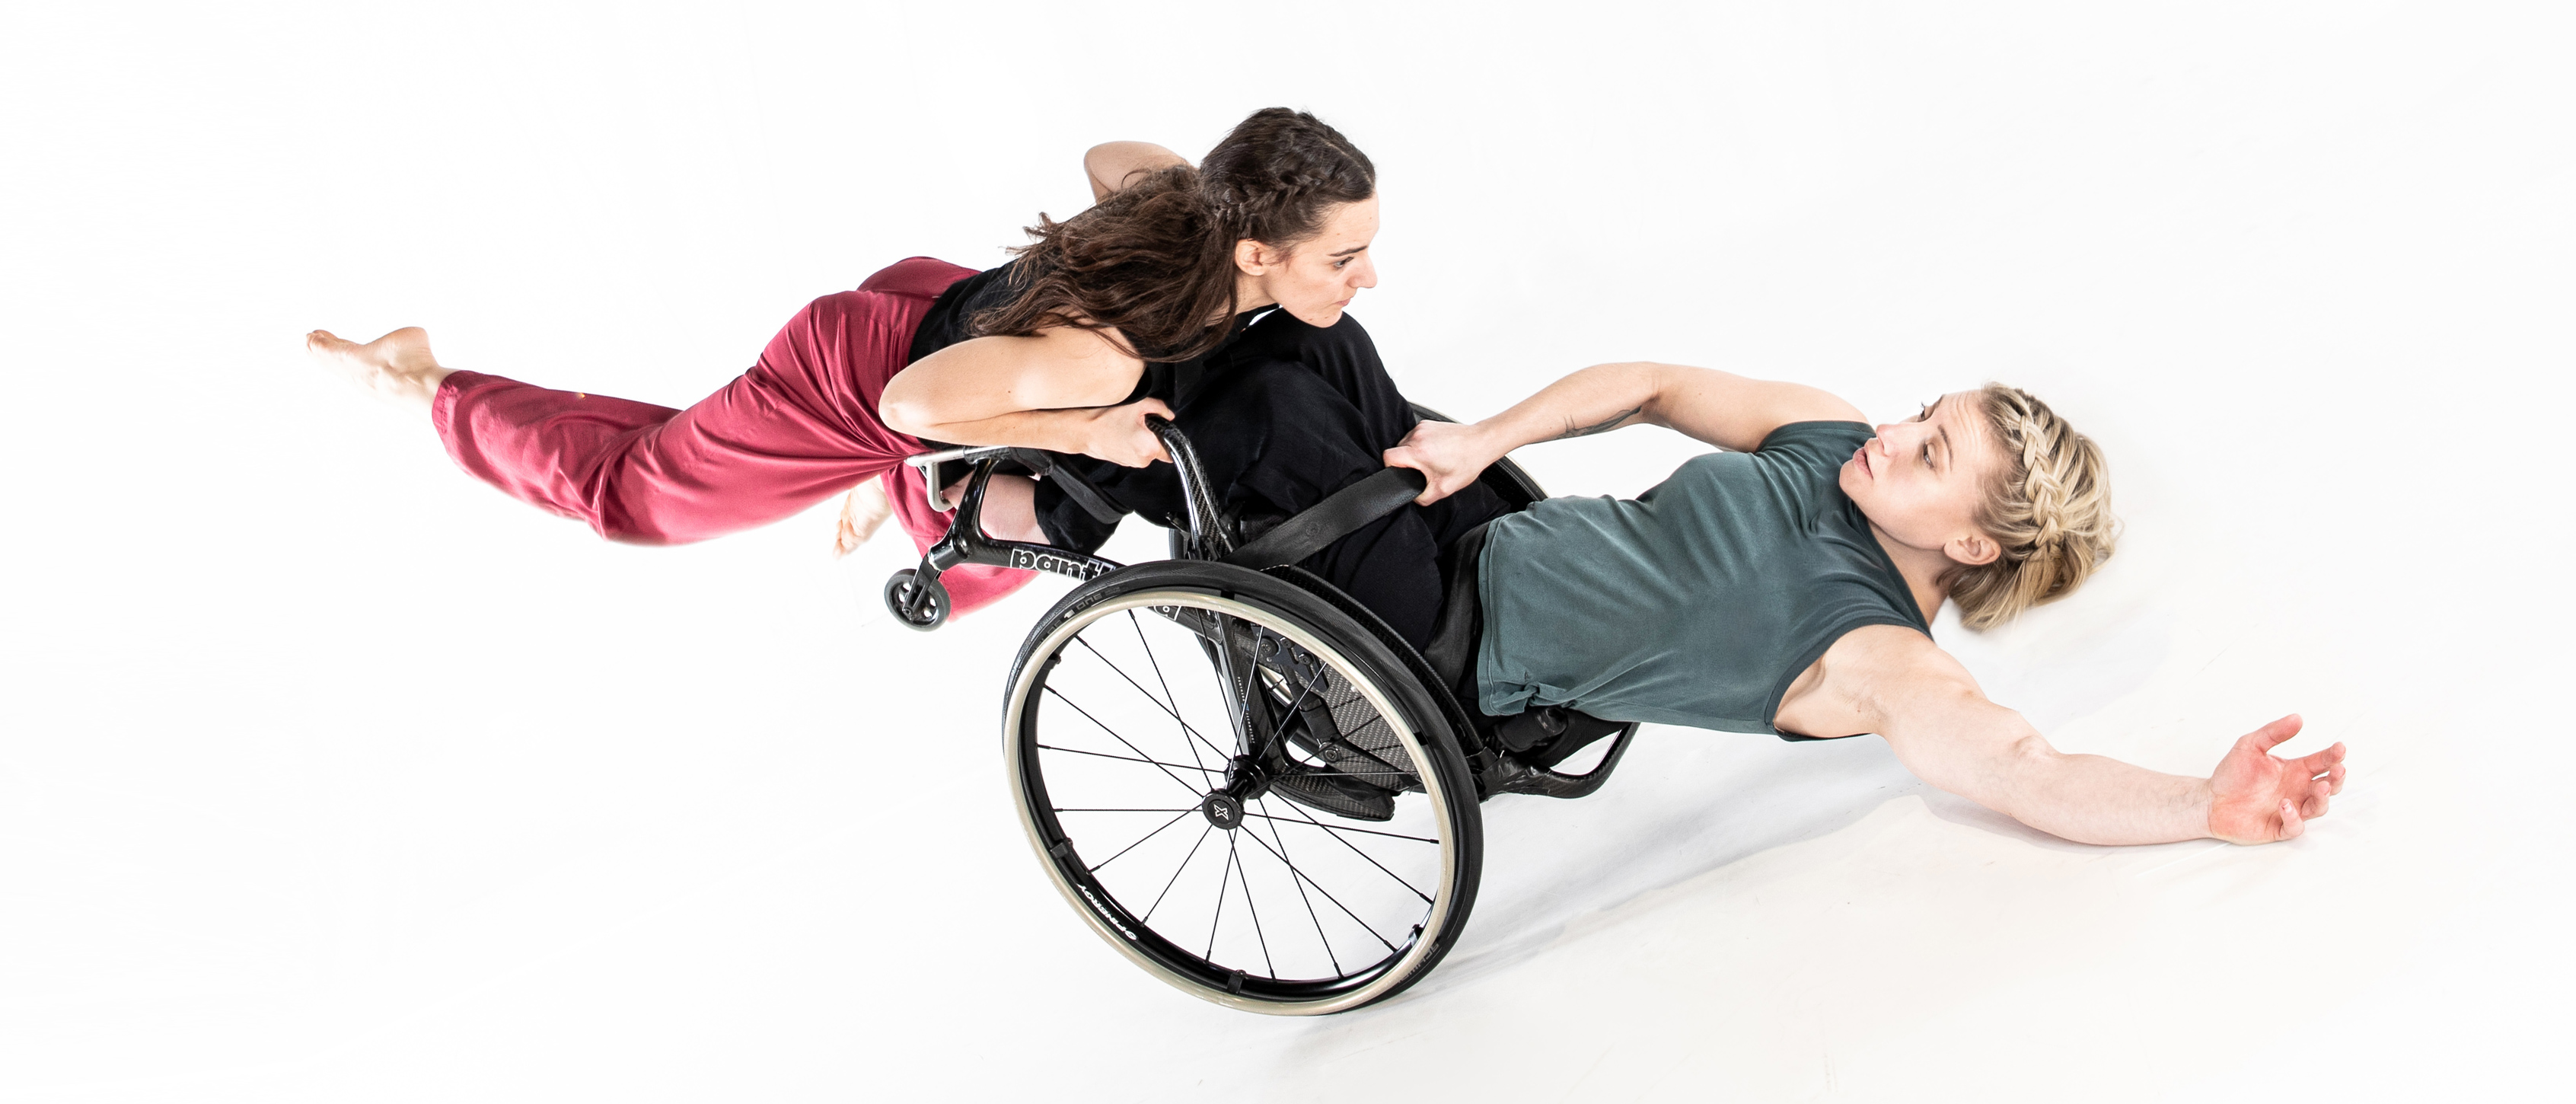 Dancer Anna is holding onto the sides of a wheelchair in which dancer Madeleine is sitting. The wheelchair is leaning backwards with Madeleine stretching her hand forward as Anna runs while holding her.